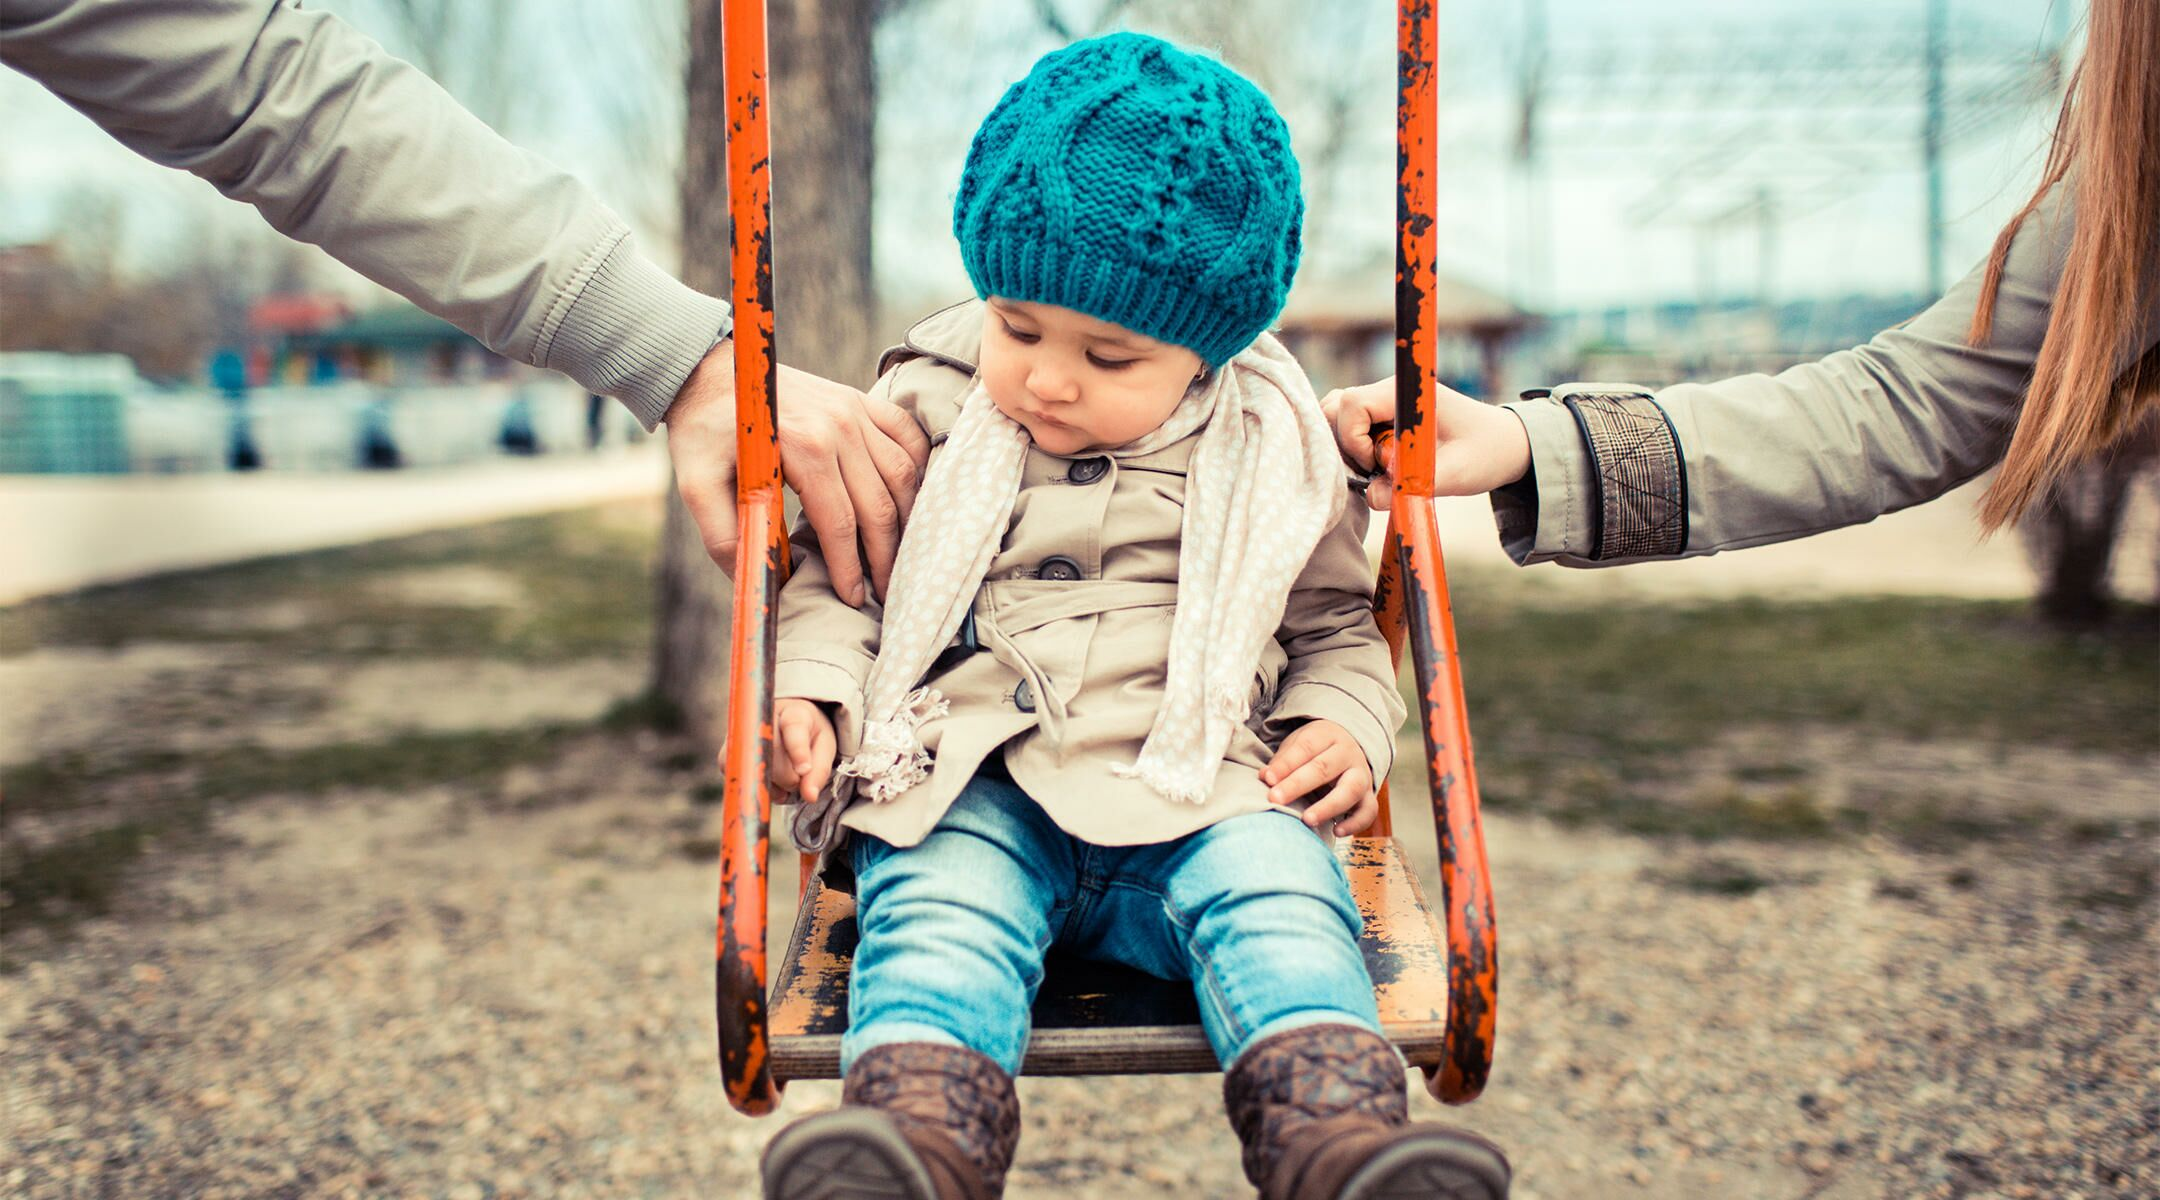 8 Rules for Co-Parenting With Your Ex Without (Many) Fights